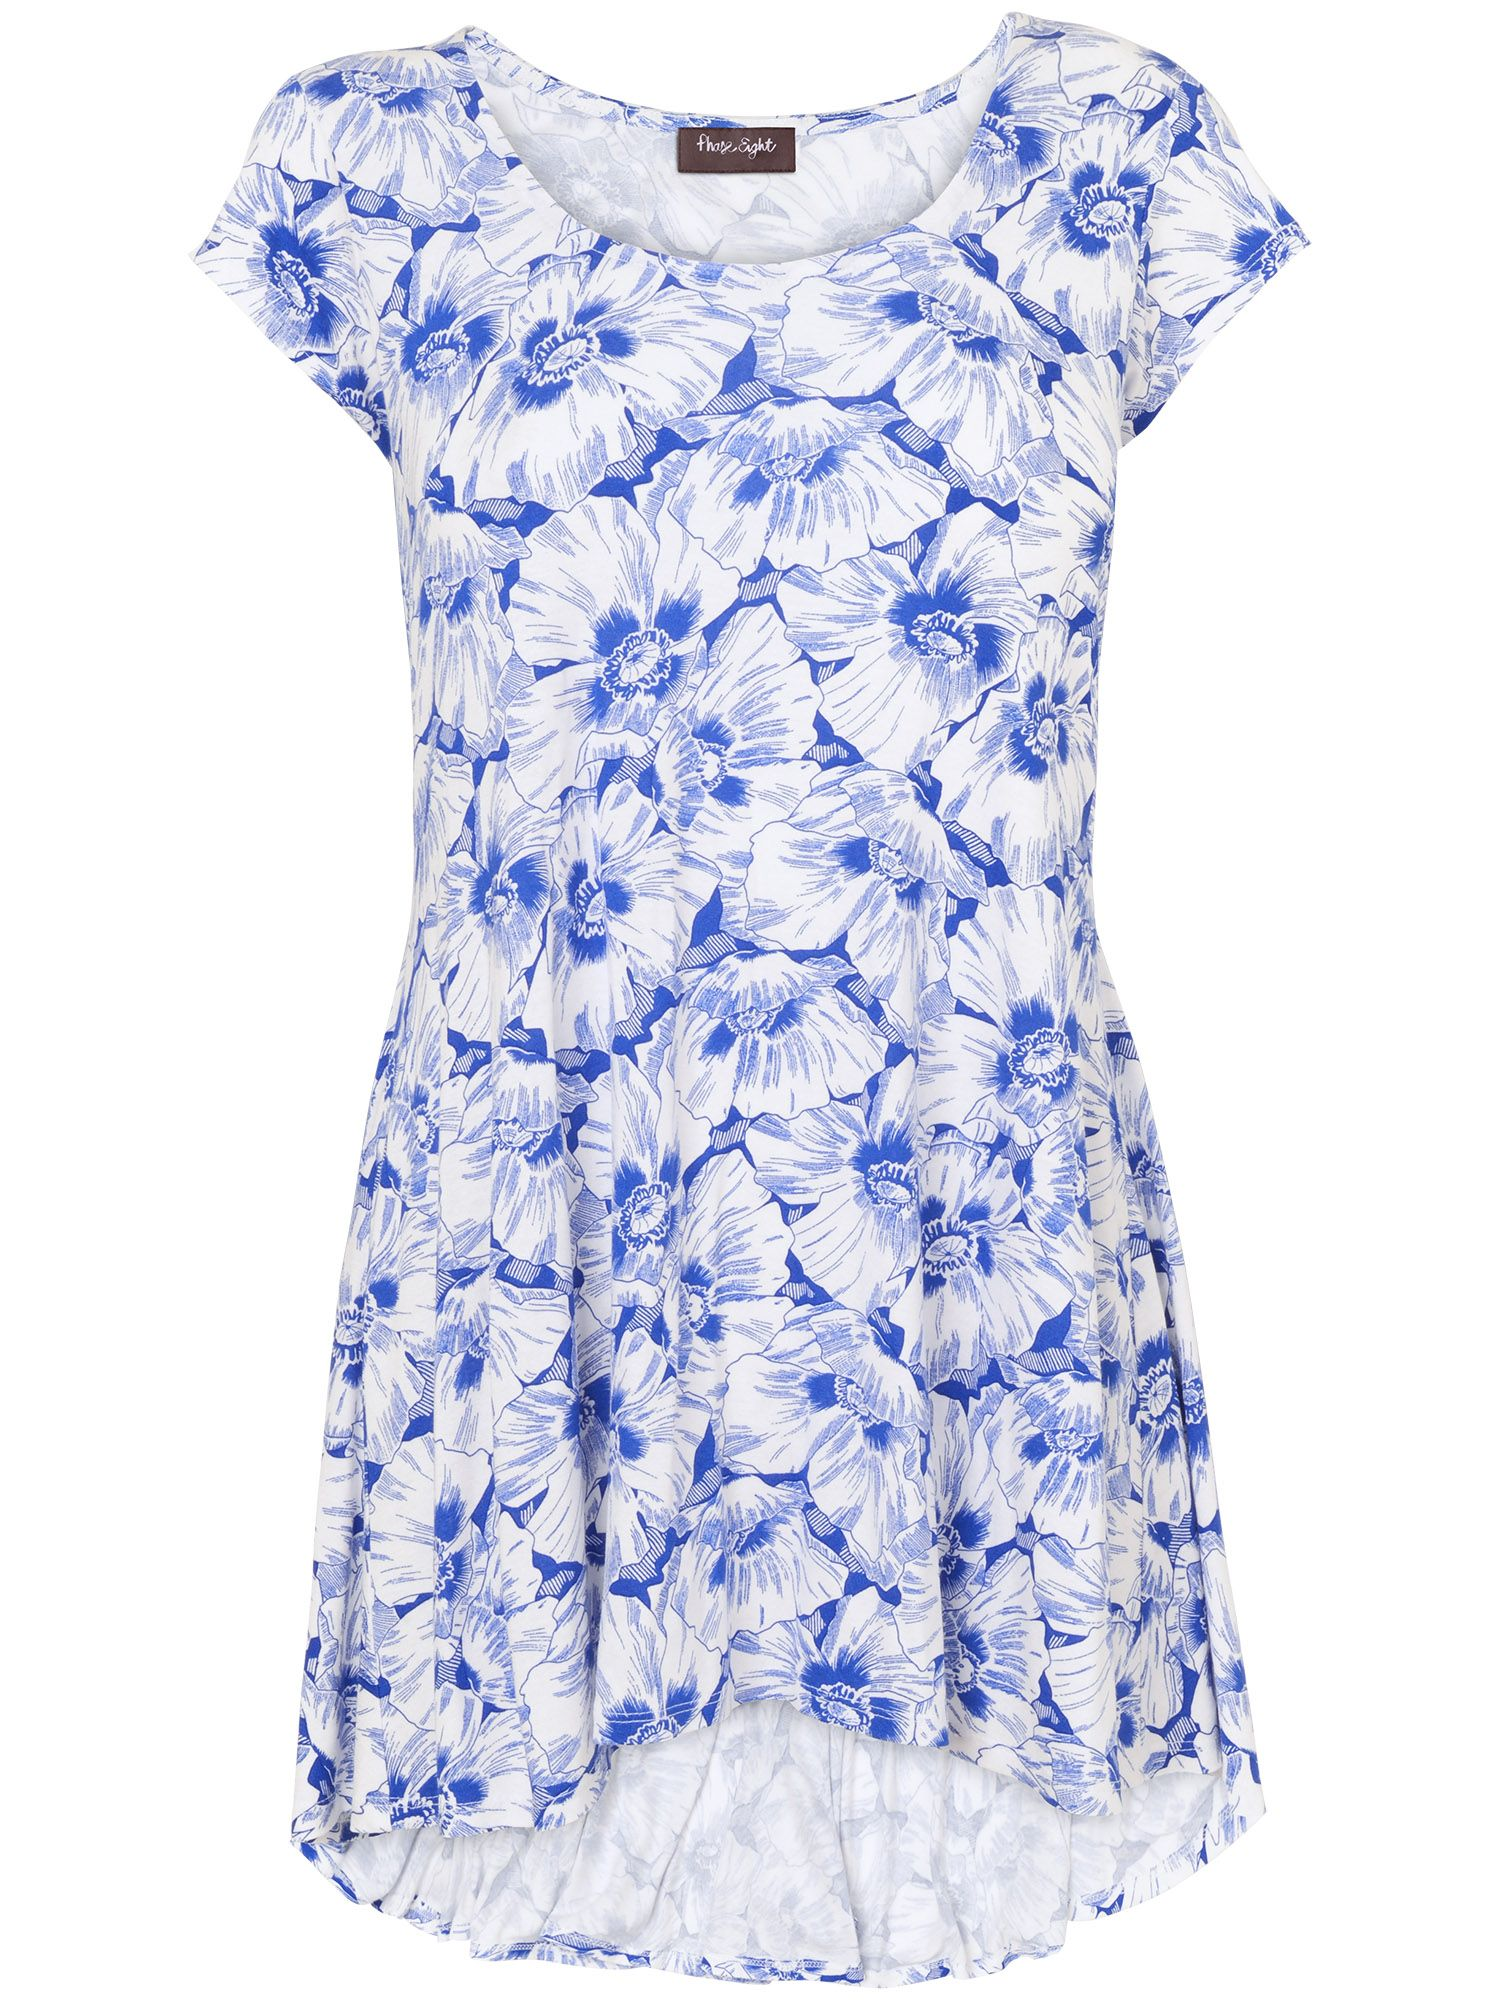 Floral tegan cap sleeve top